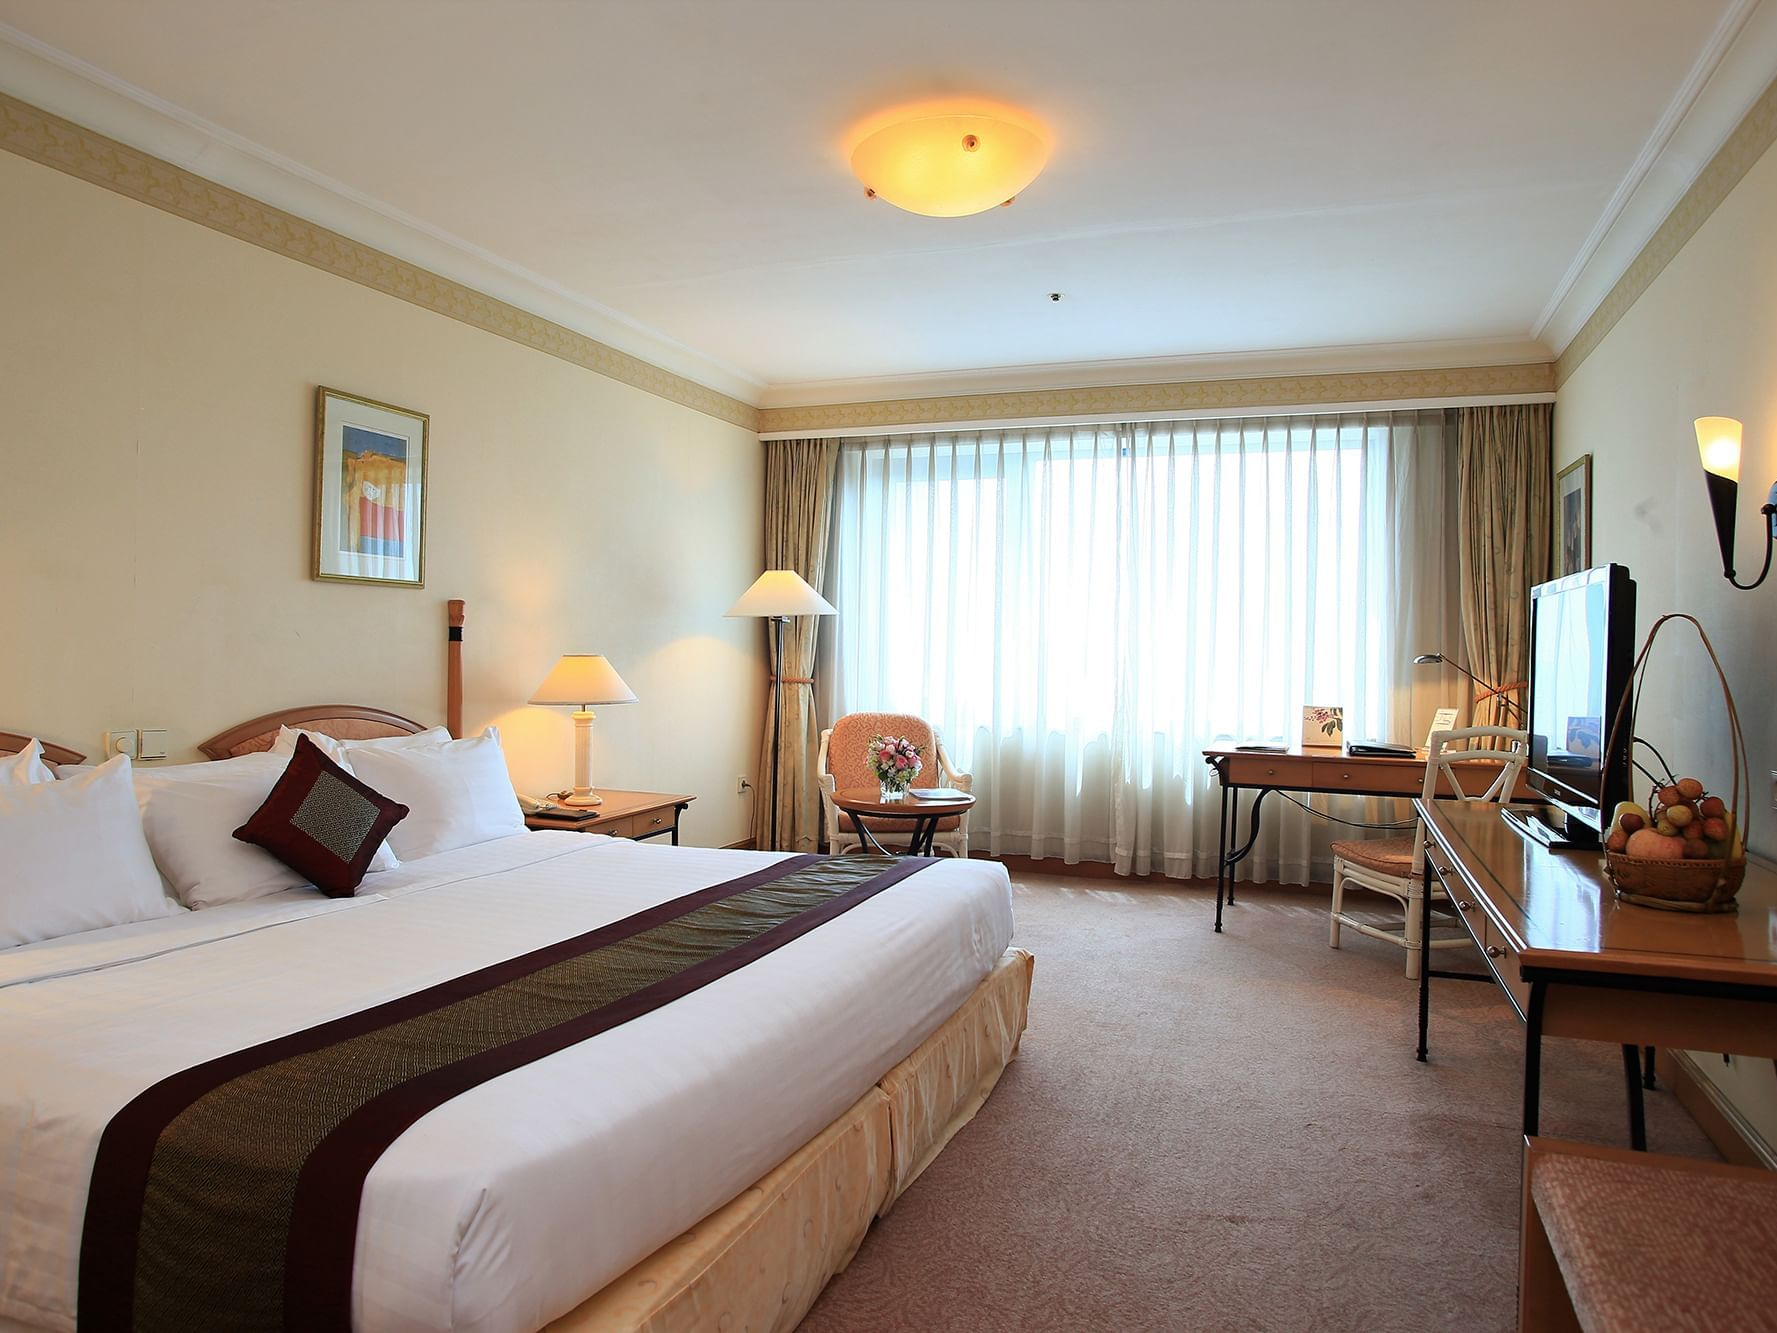 Deluxe Room with one bed at Hanoi Daewoo Hotel